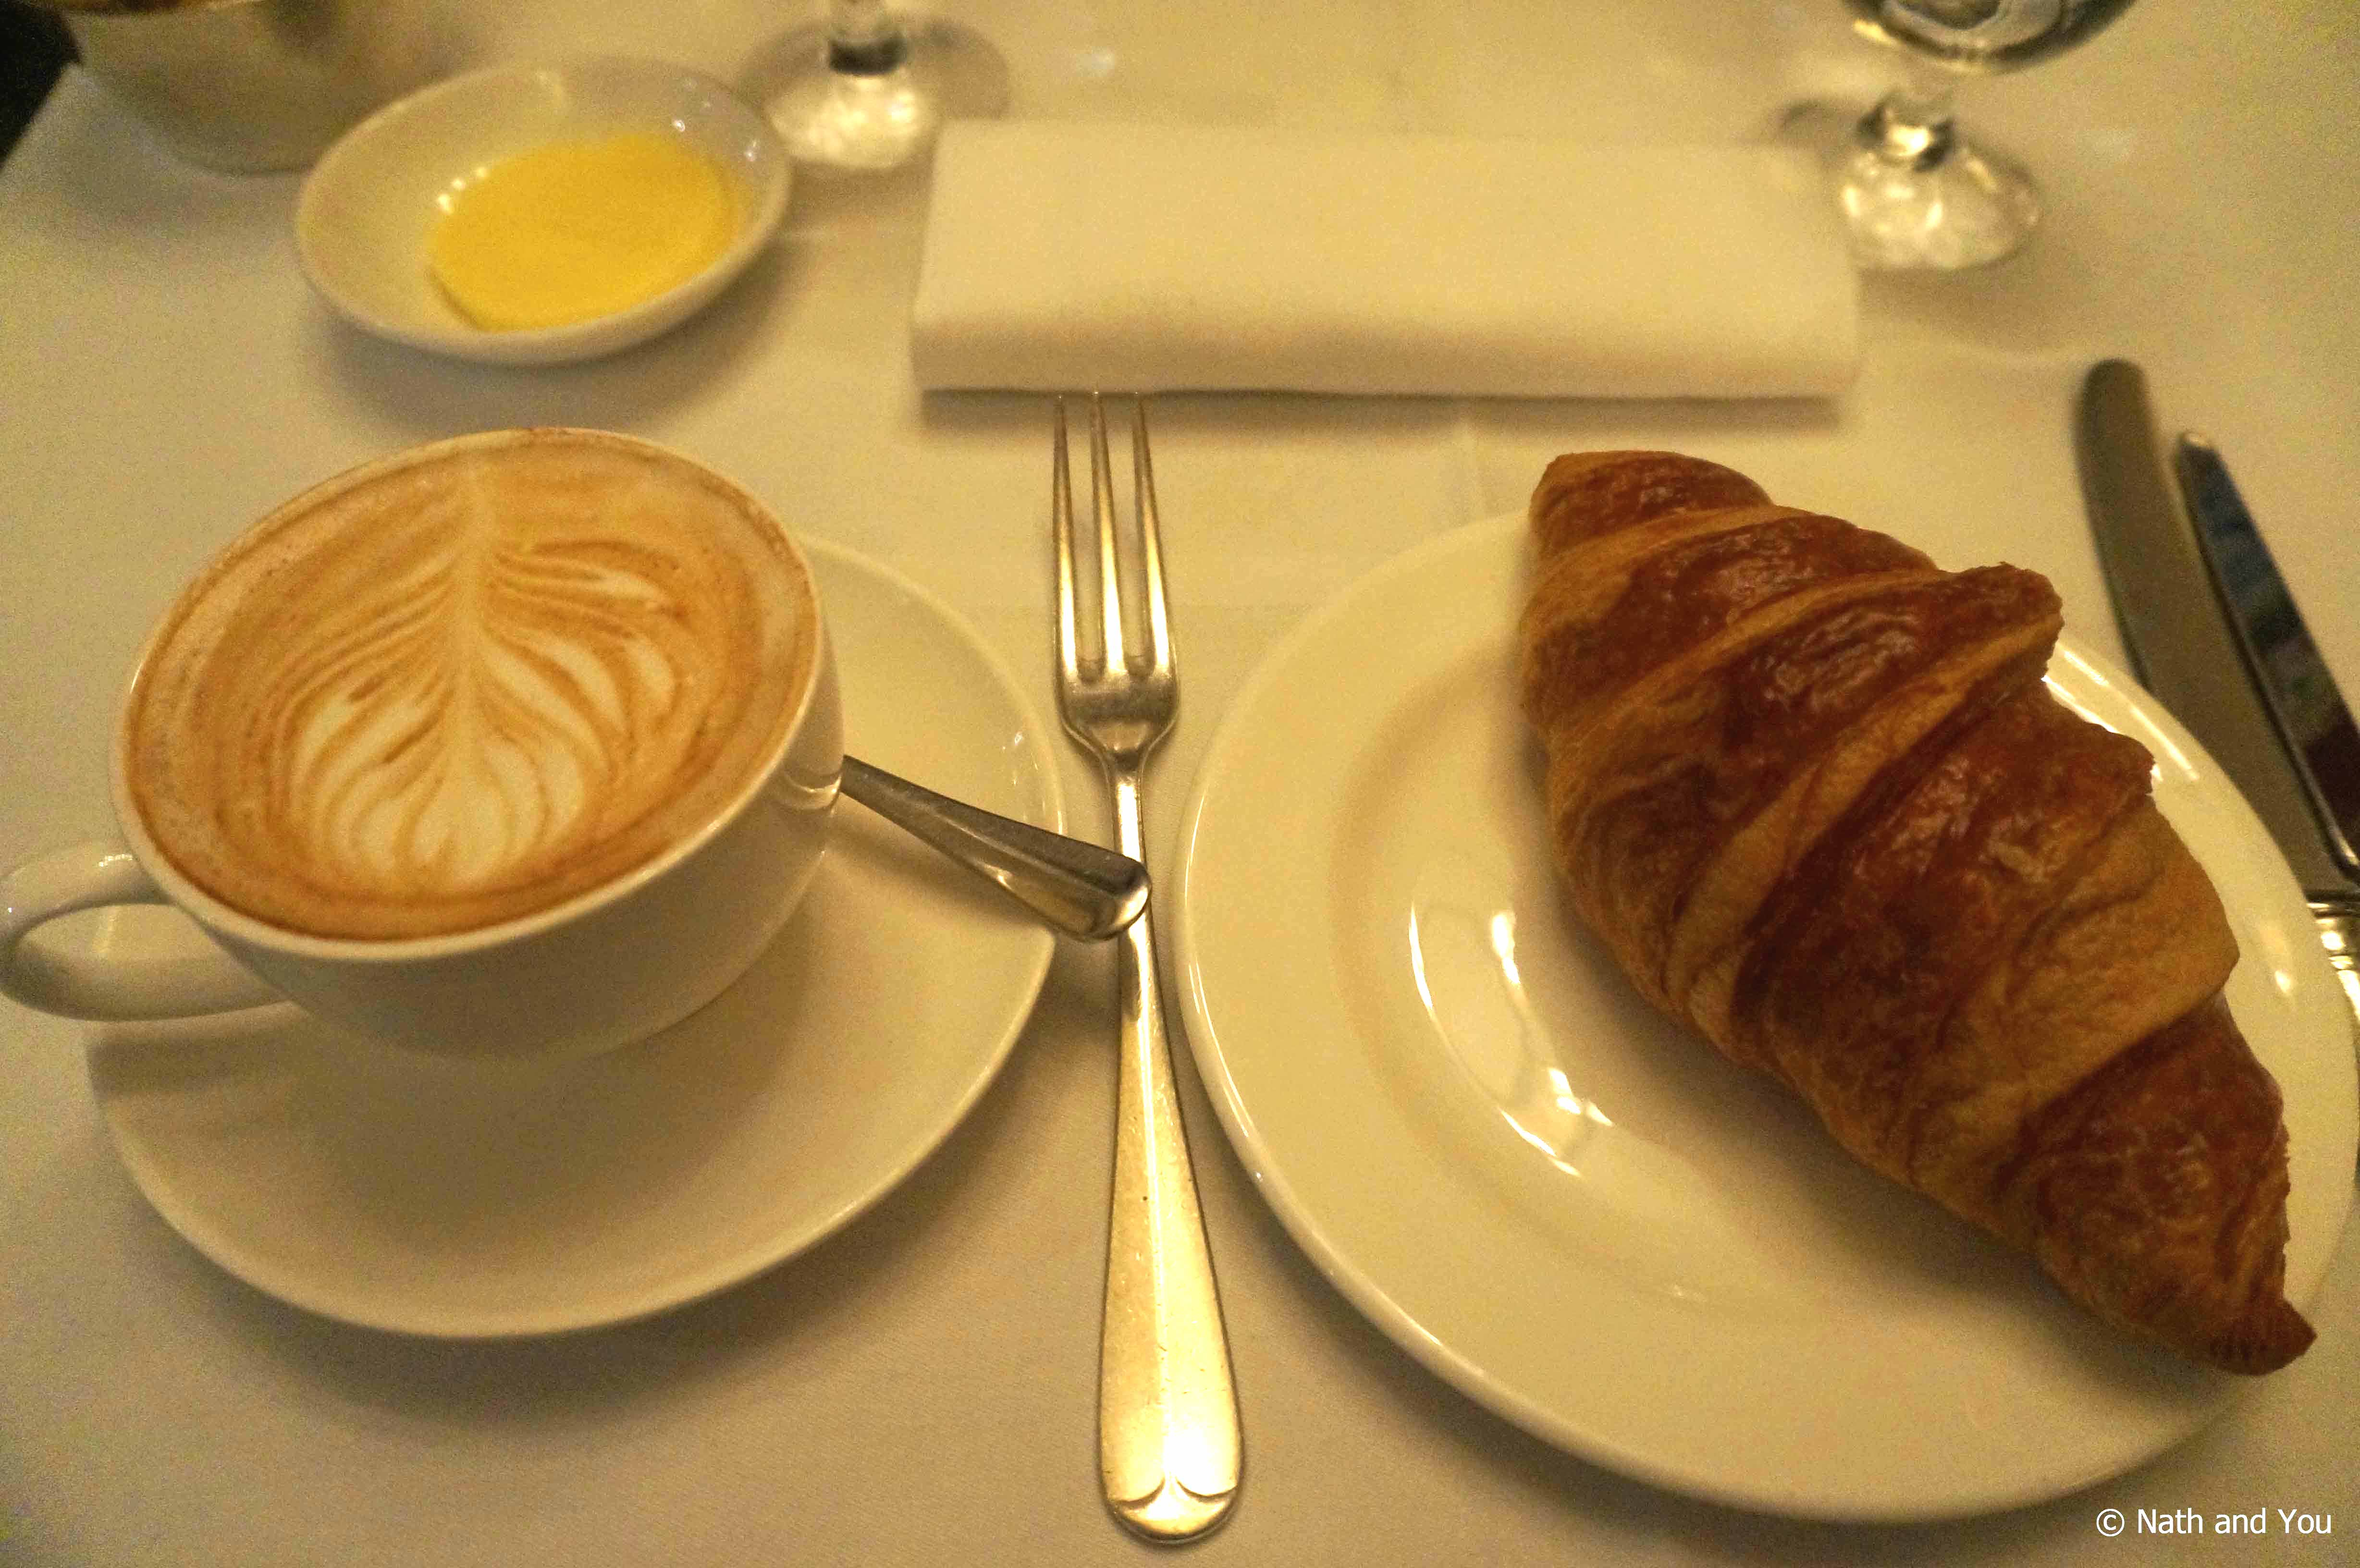 Breakfast-Dean-Street-TownHouse-Weekend-Londres-Nath-and-you